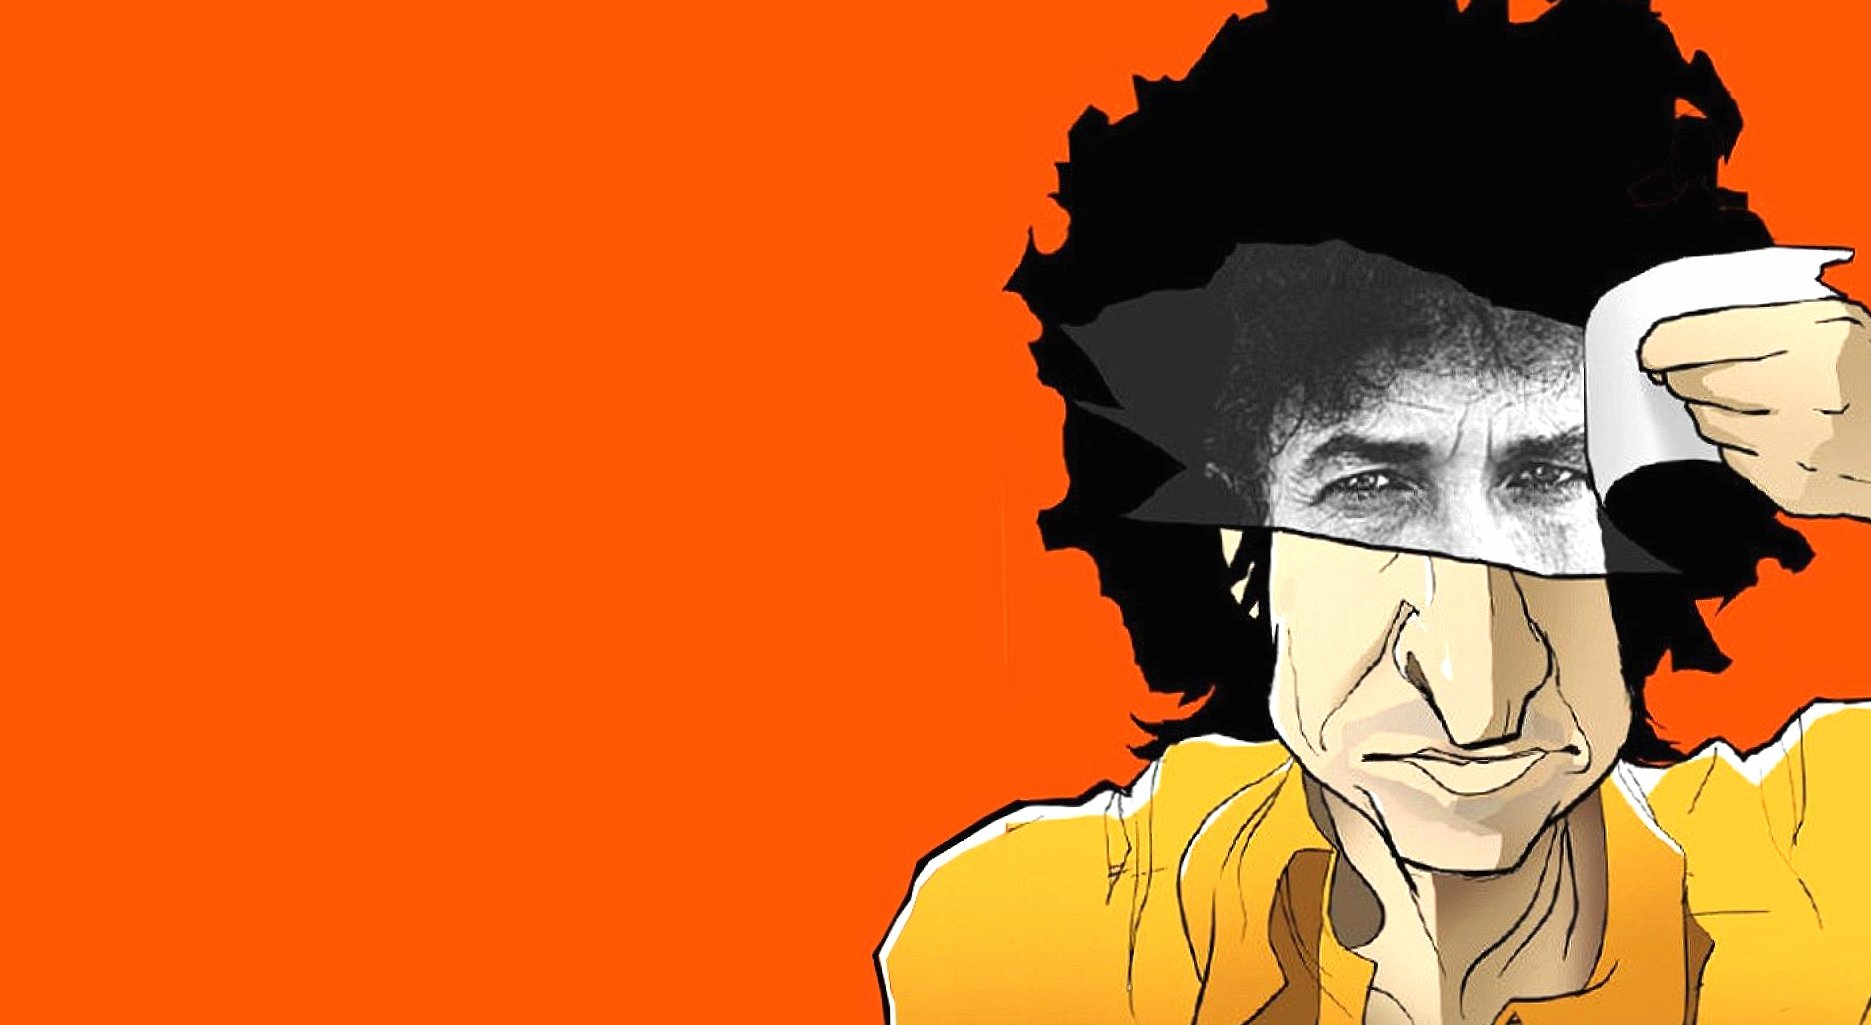 Funny bob dylan caricature wallpapers HD quality